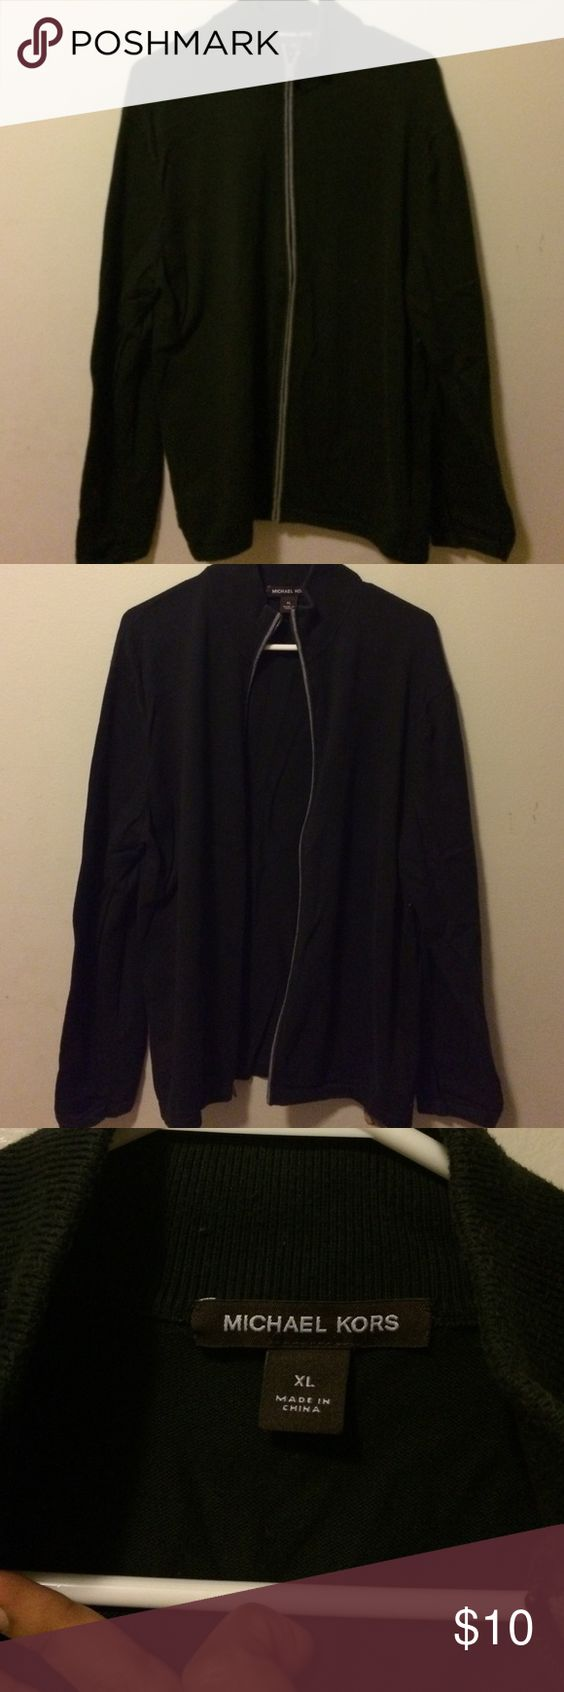 Black Michael Kors sweater Good condition Michael Kors Sweater Michael Kors Sweaters Zip Up